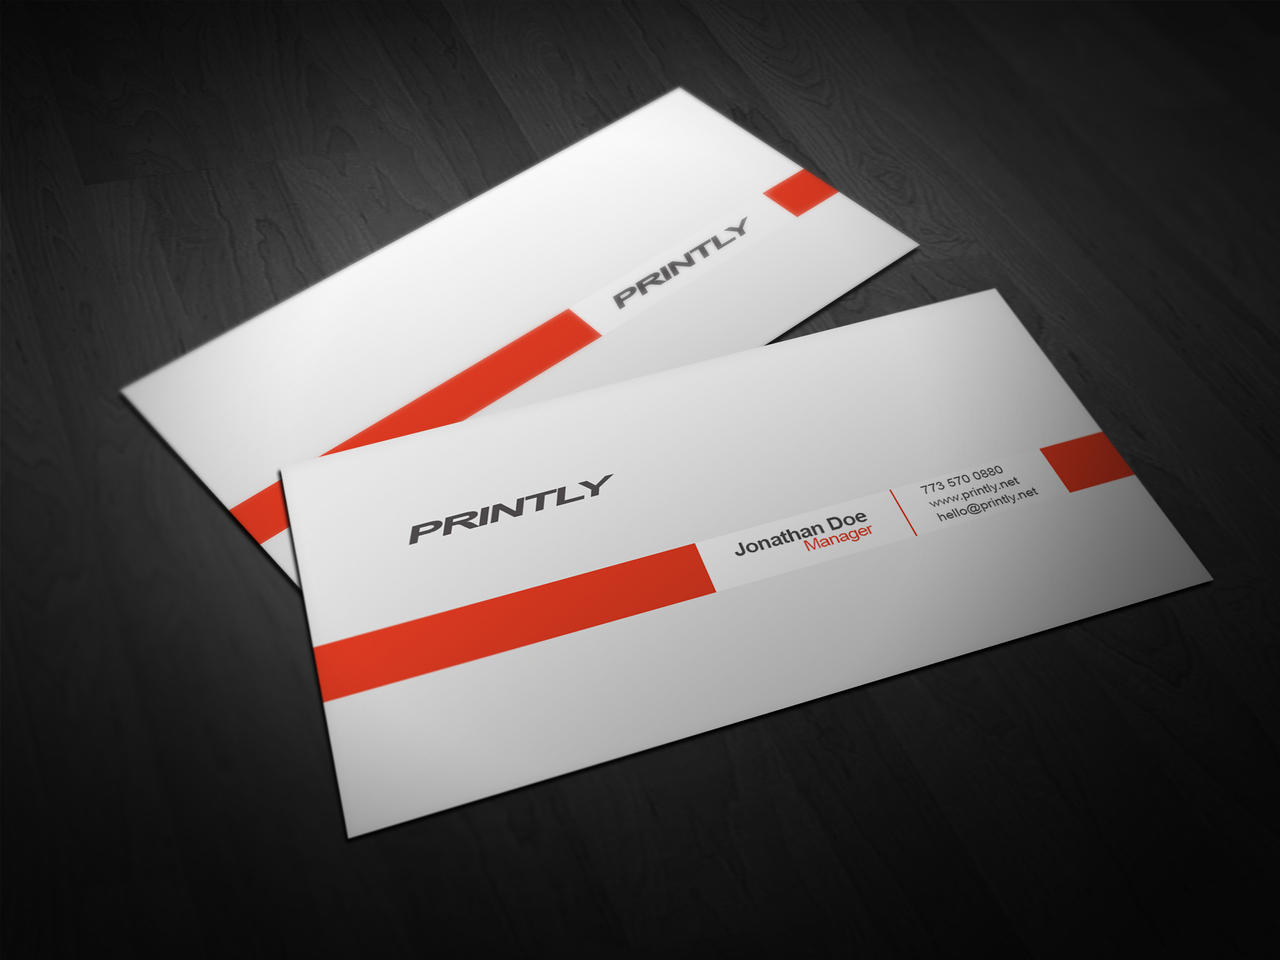 Free Printly Business Card PSD Template by kjarmo on DeviantArt